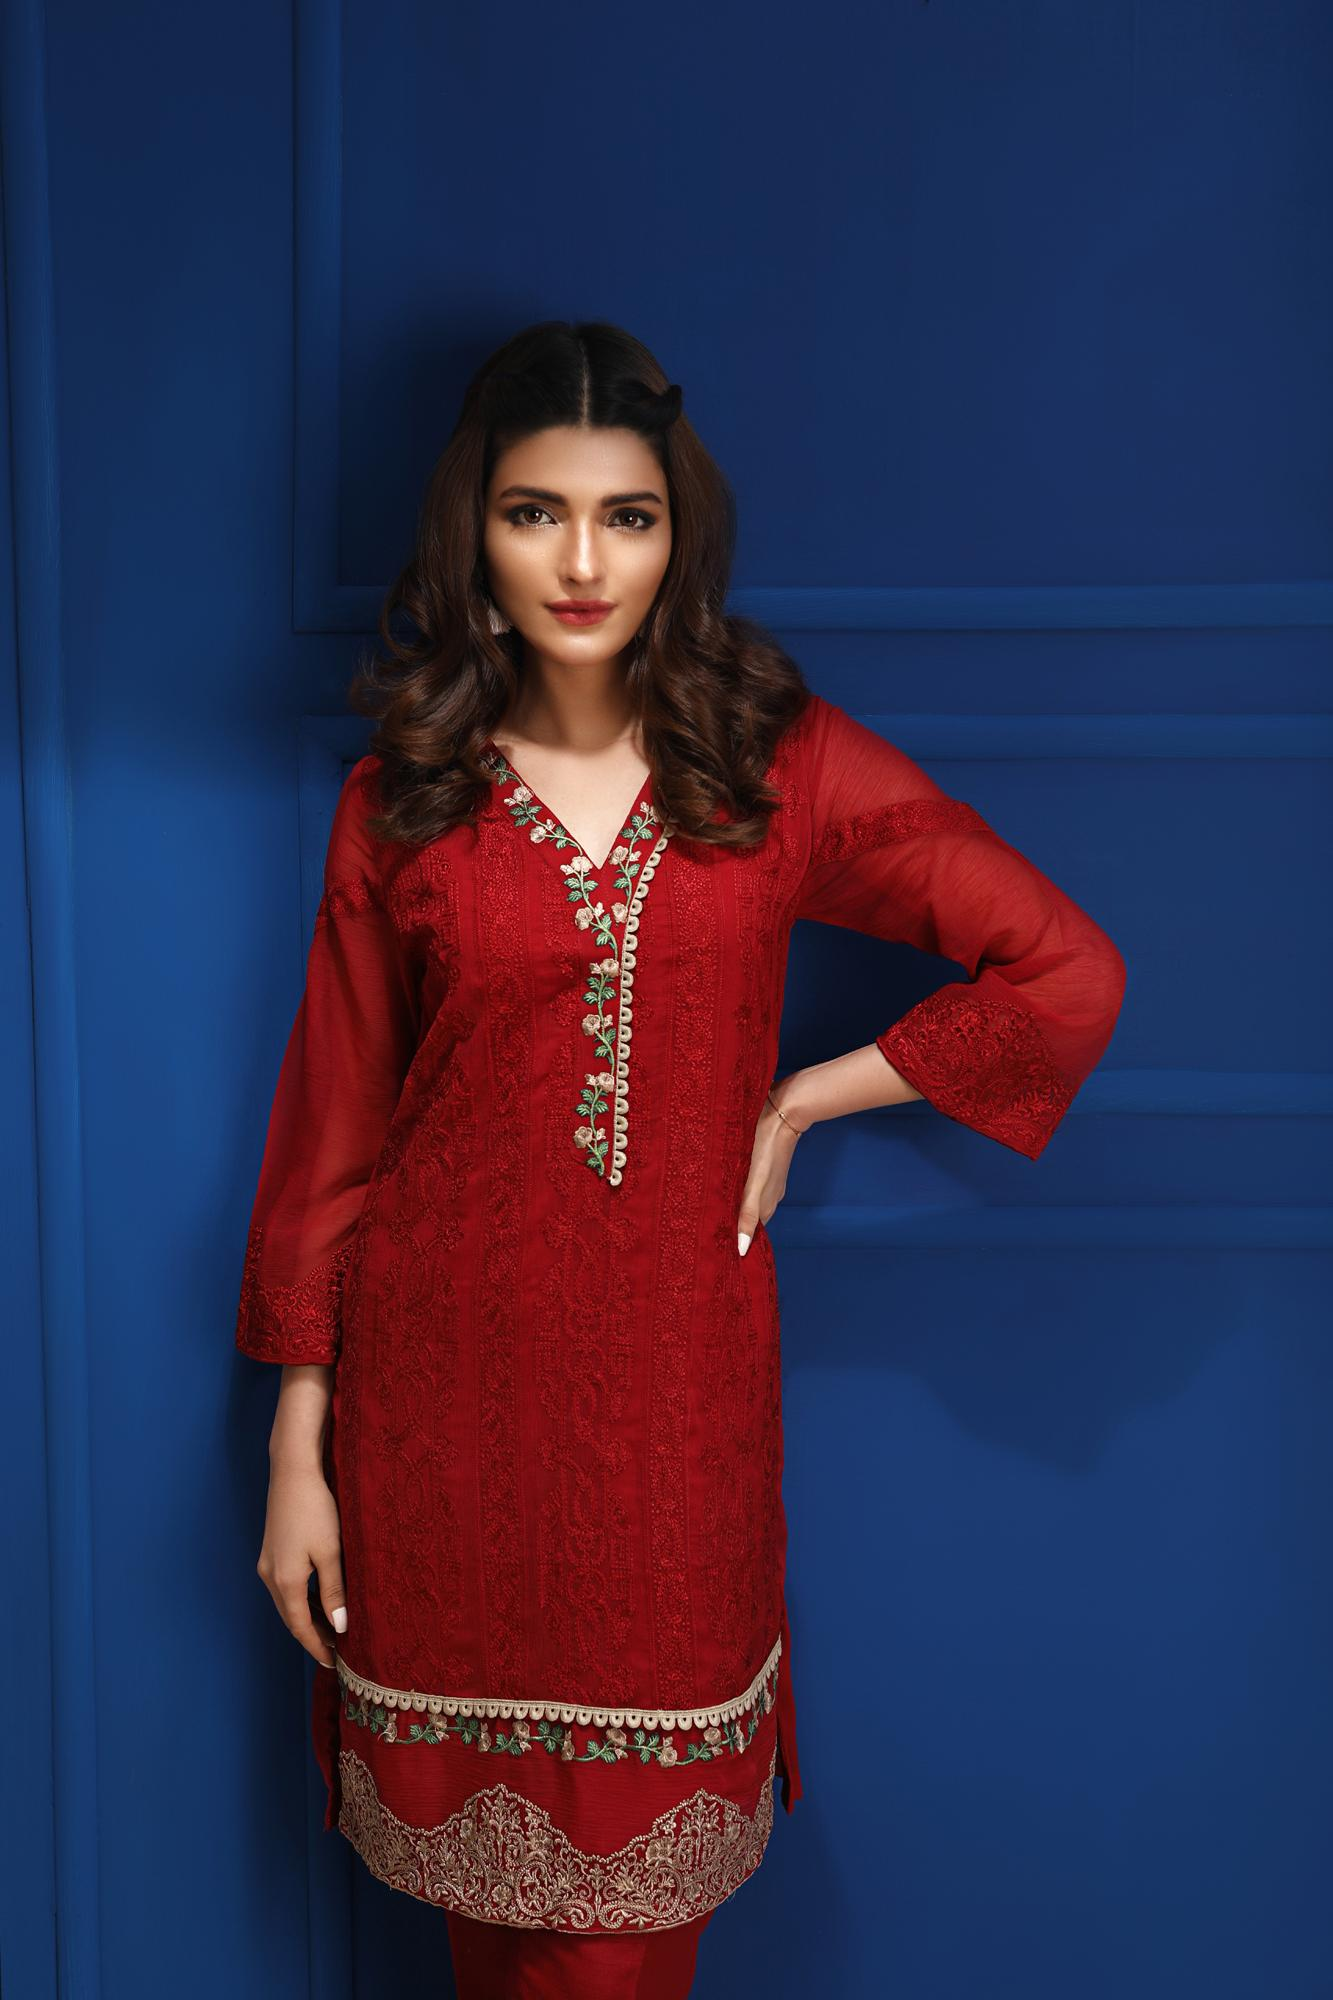 a86703efb4 Buy Women's Pakistani Dresses & Traditional Clothing Online at Daraz.pk